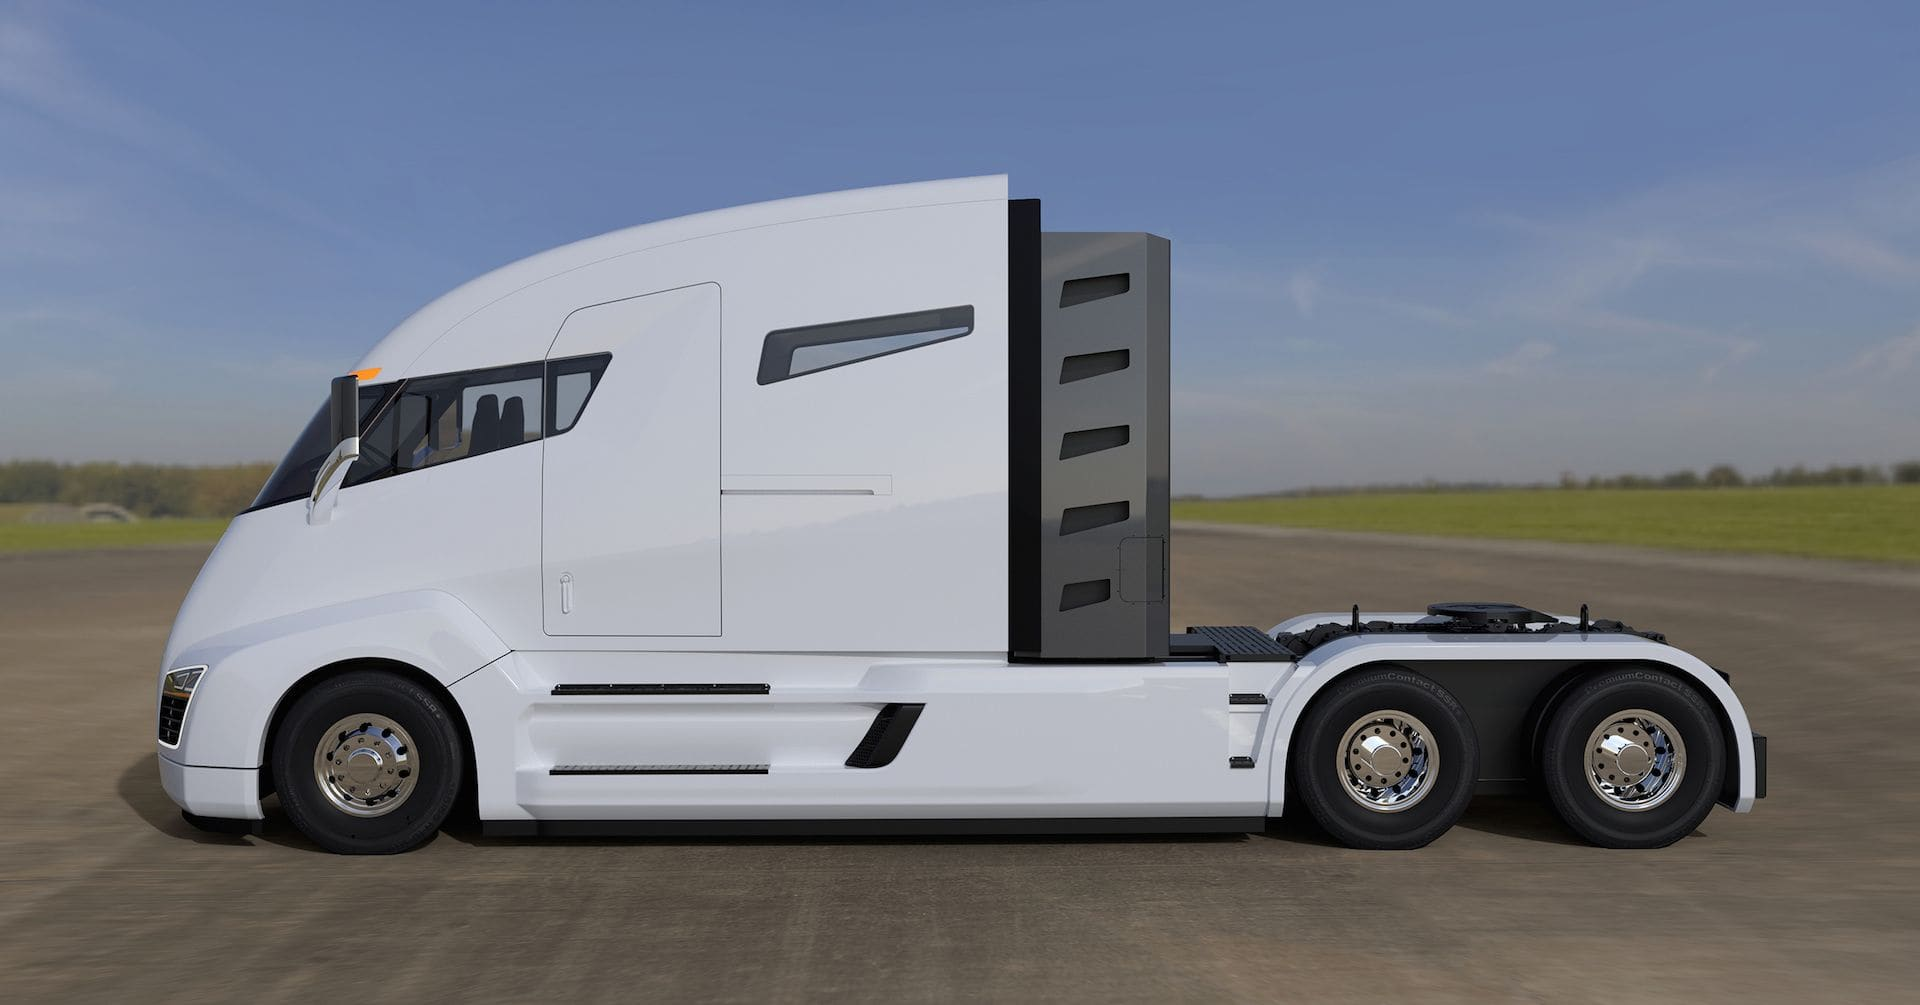 Electric Island Available is for Heavy-Duty Electric Trucks